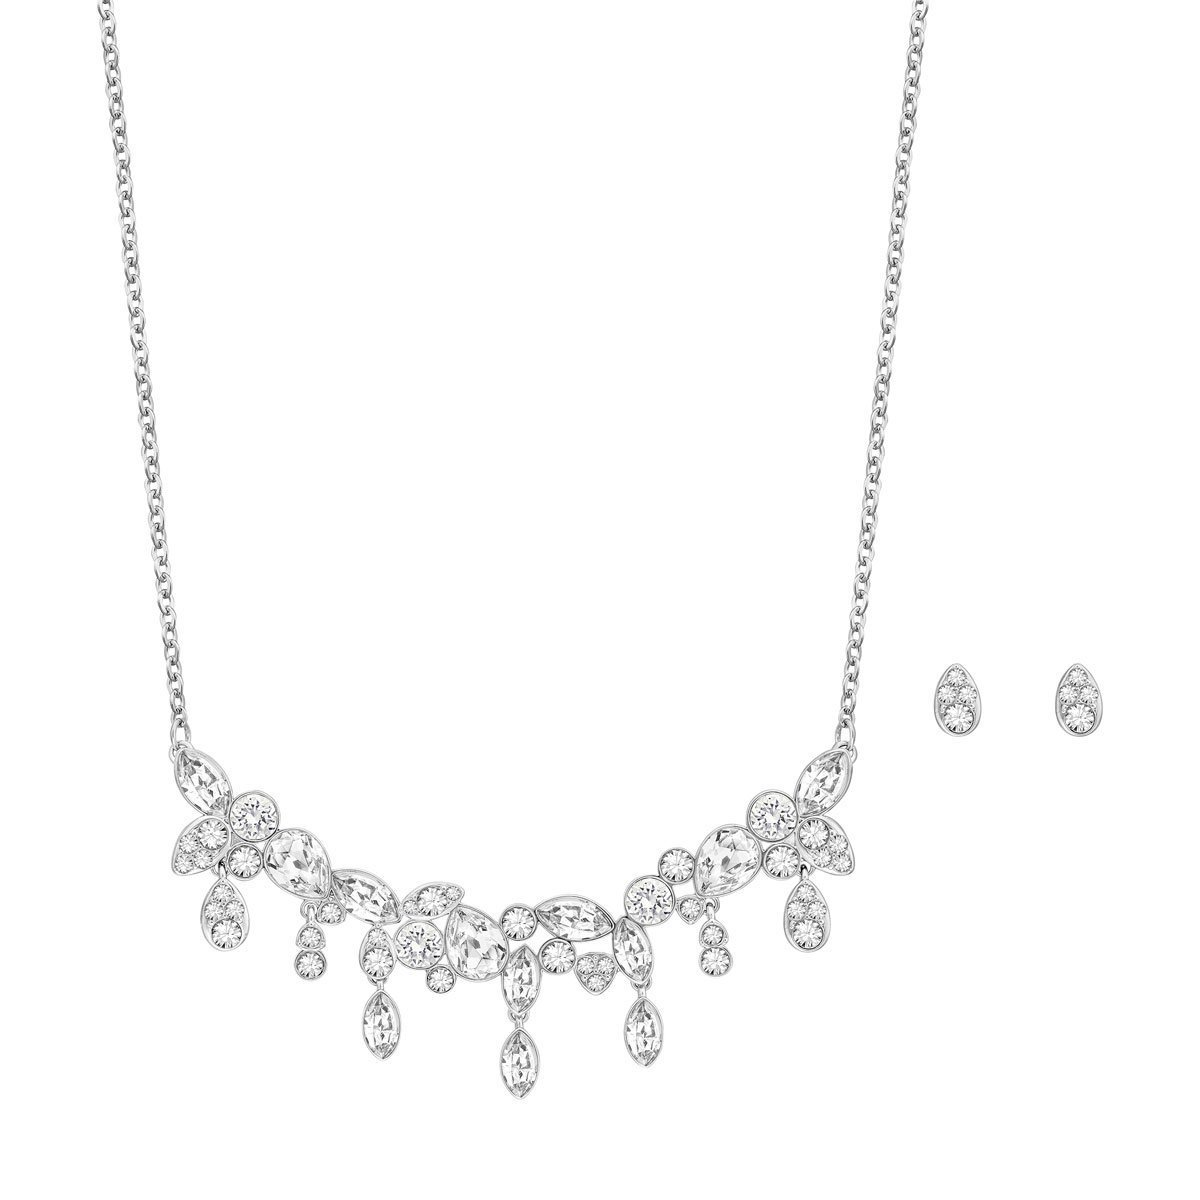 Swarovski Diapason Earrings and Necklace Set